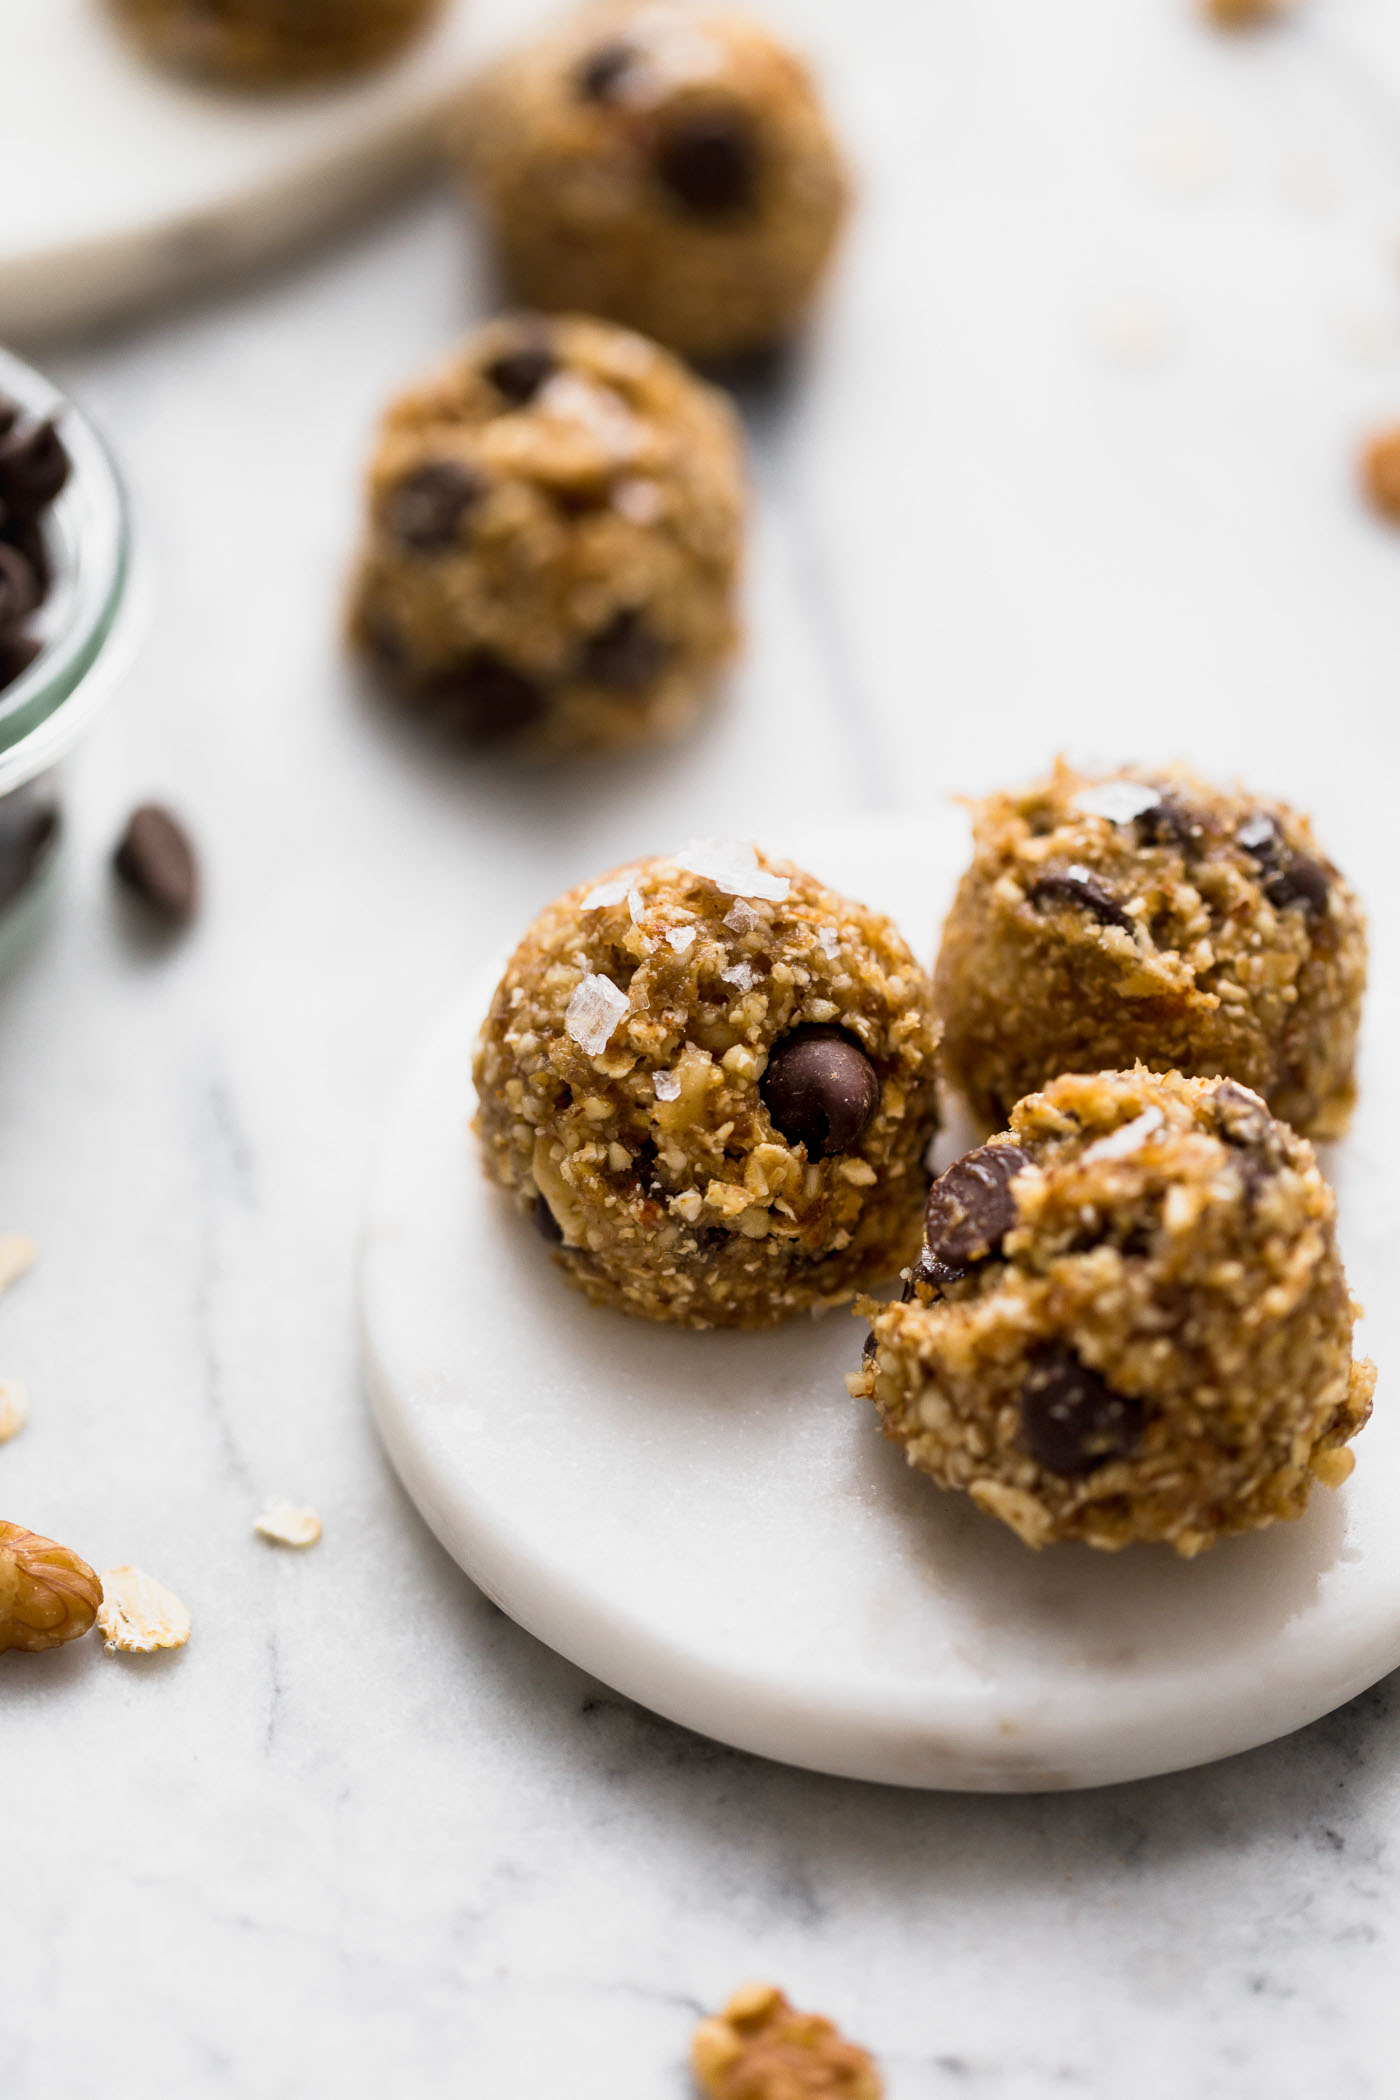 chocolate chip banana bread bliss balls are an easy & totally wholesome snack! inspired by chocolate chip banana bread, but in the form of a healthy, raw energy bite, these chocolate chip banana bread bliss balls are loaded with dates, cashews, almonds, walnuts, and banana. #playswellwithbutter #blissballs #energybites #healthysnack #healthydessert #healthyrecipe #bananabreadbites #bananabread